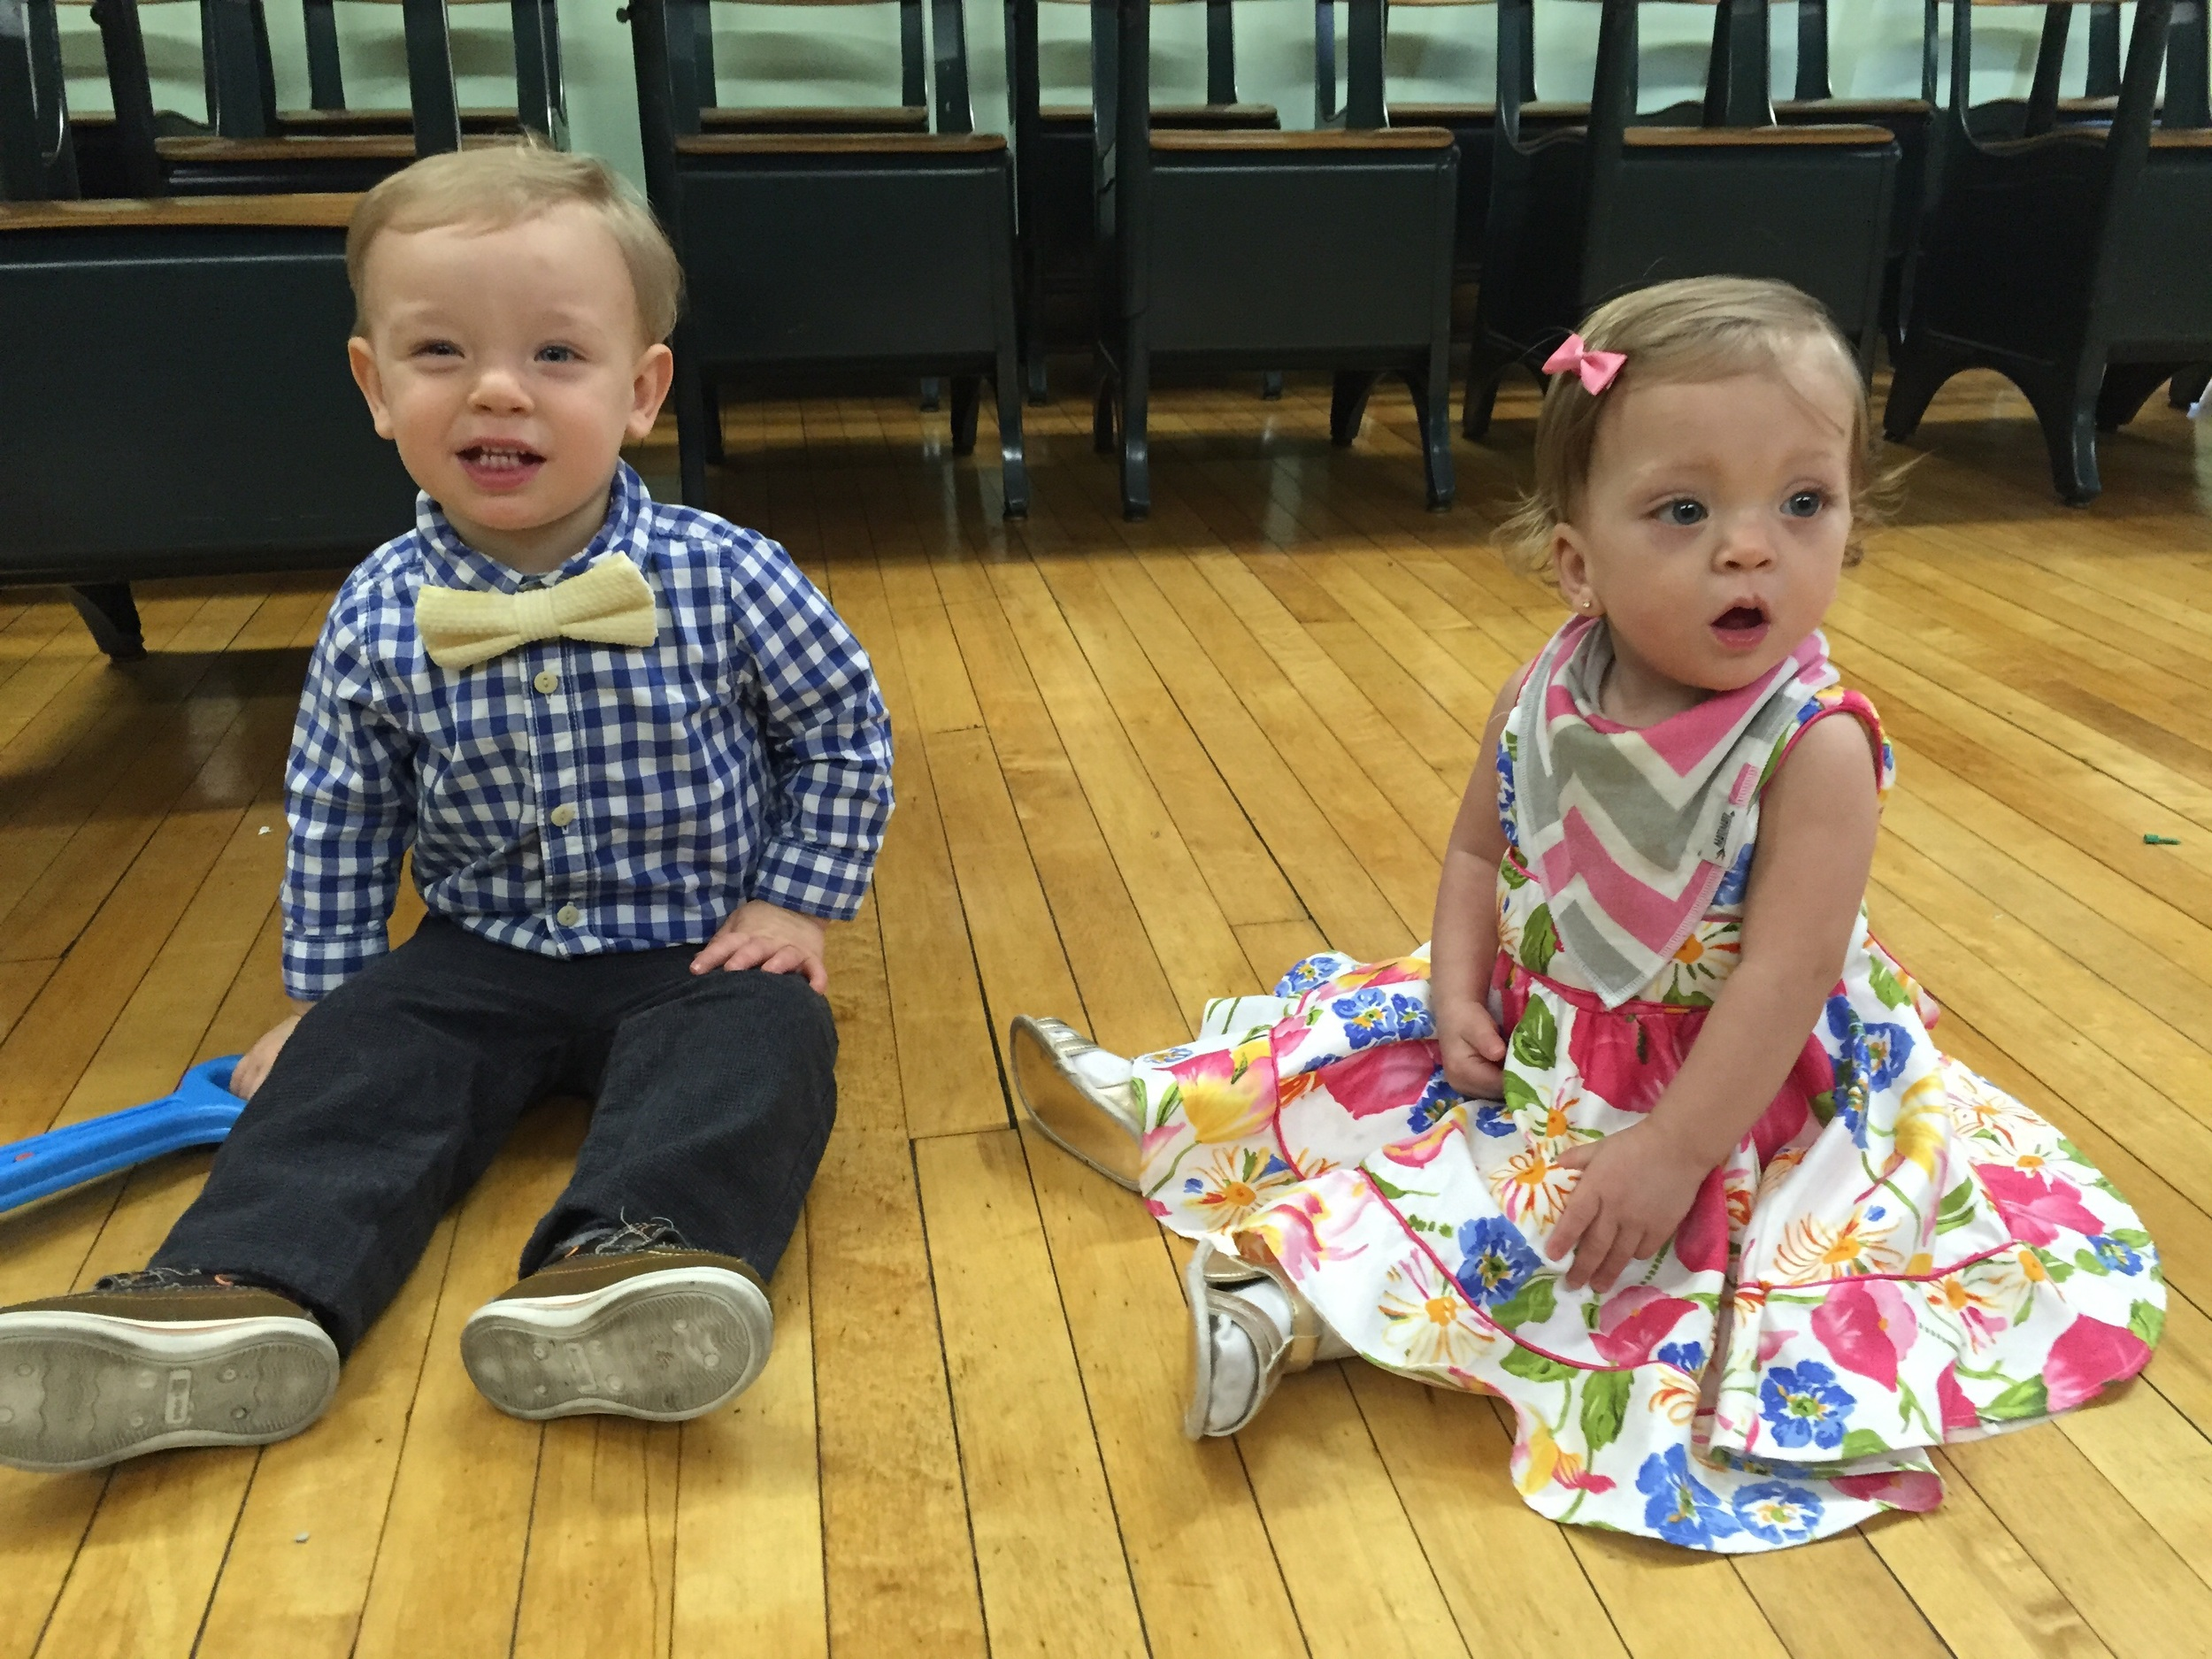 Luke and Lucie in their Easter Sunday best!